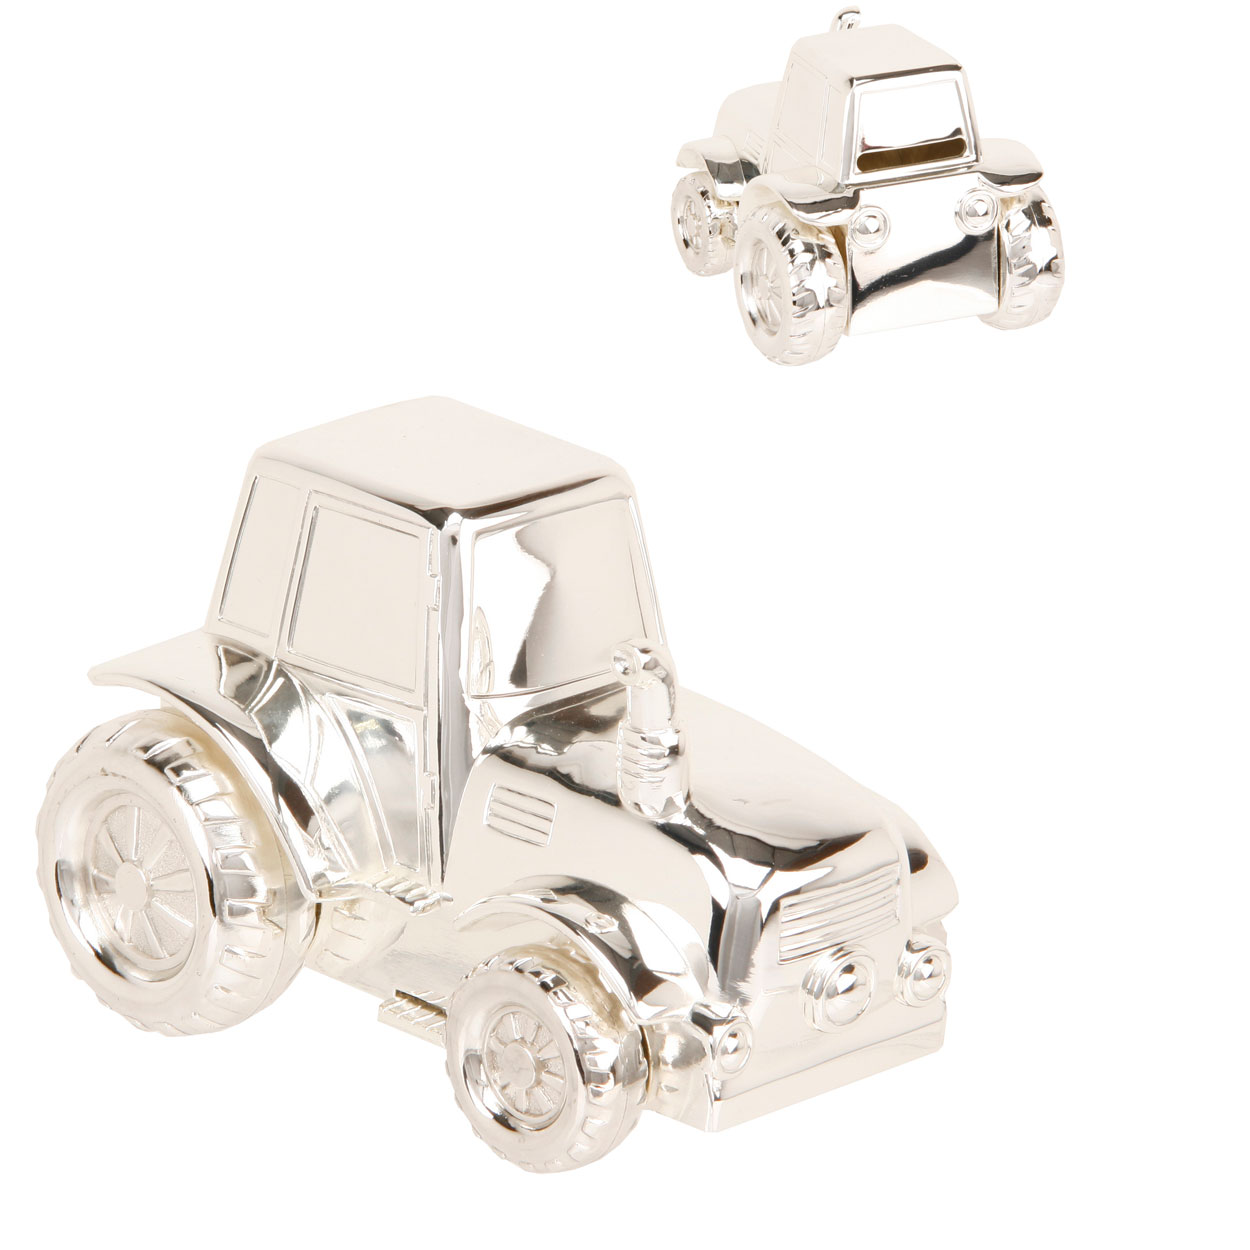 Babies Newborn Christening Gifts Silverplated Tractor